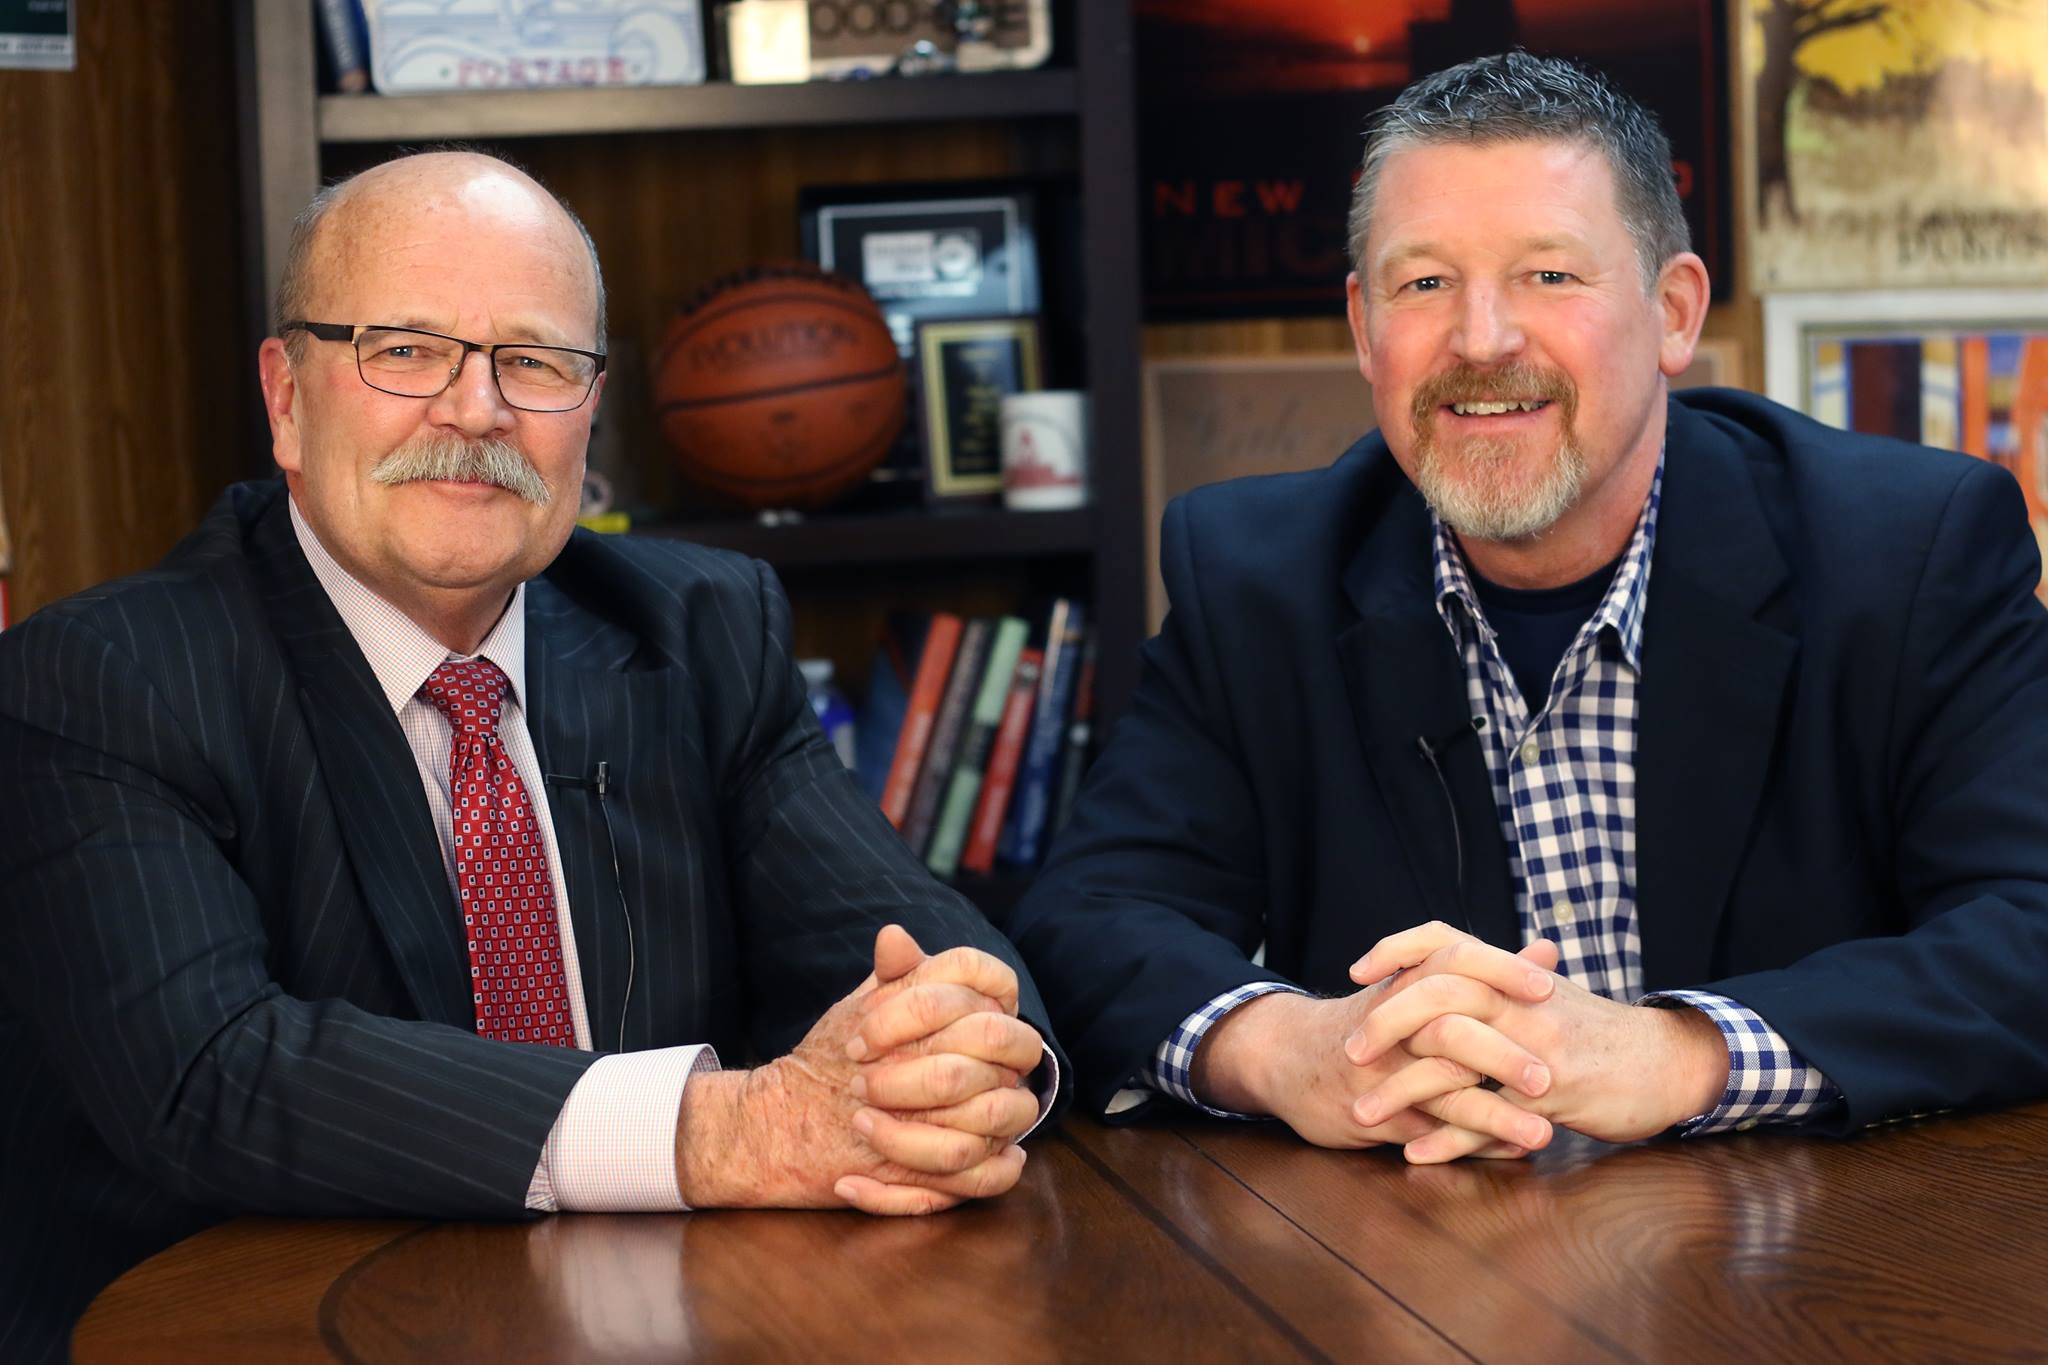 Ideas in Motion Media Welcomes John Gregg for Roundtable Interview on Upcoming Election